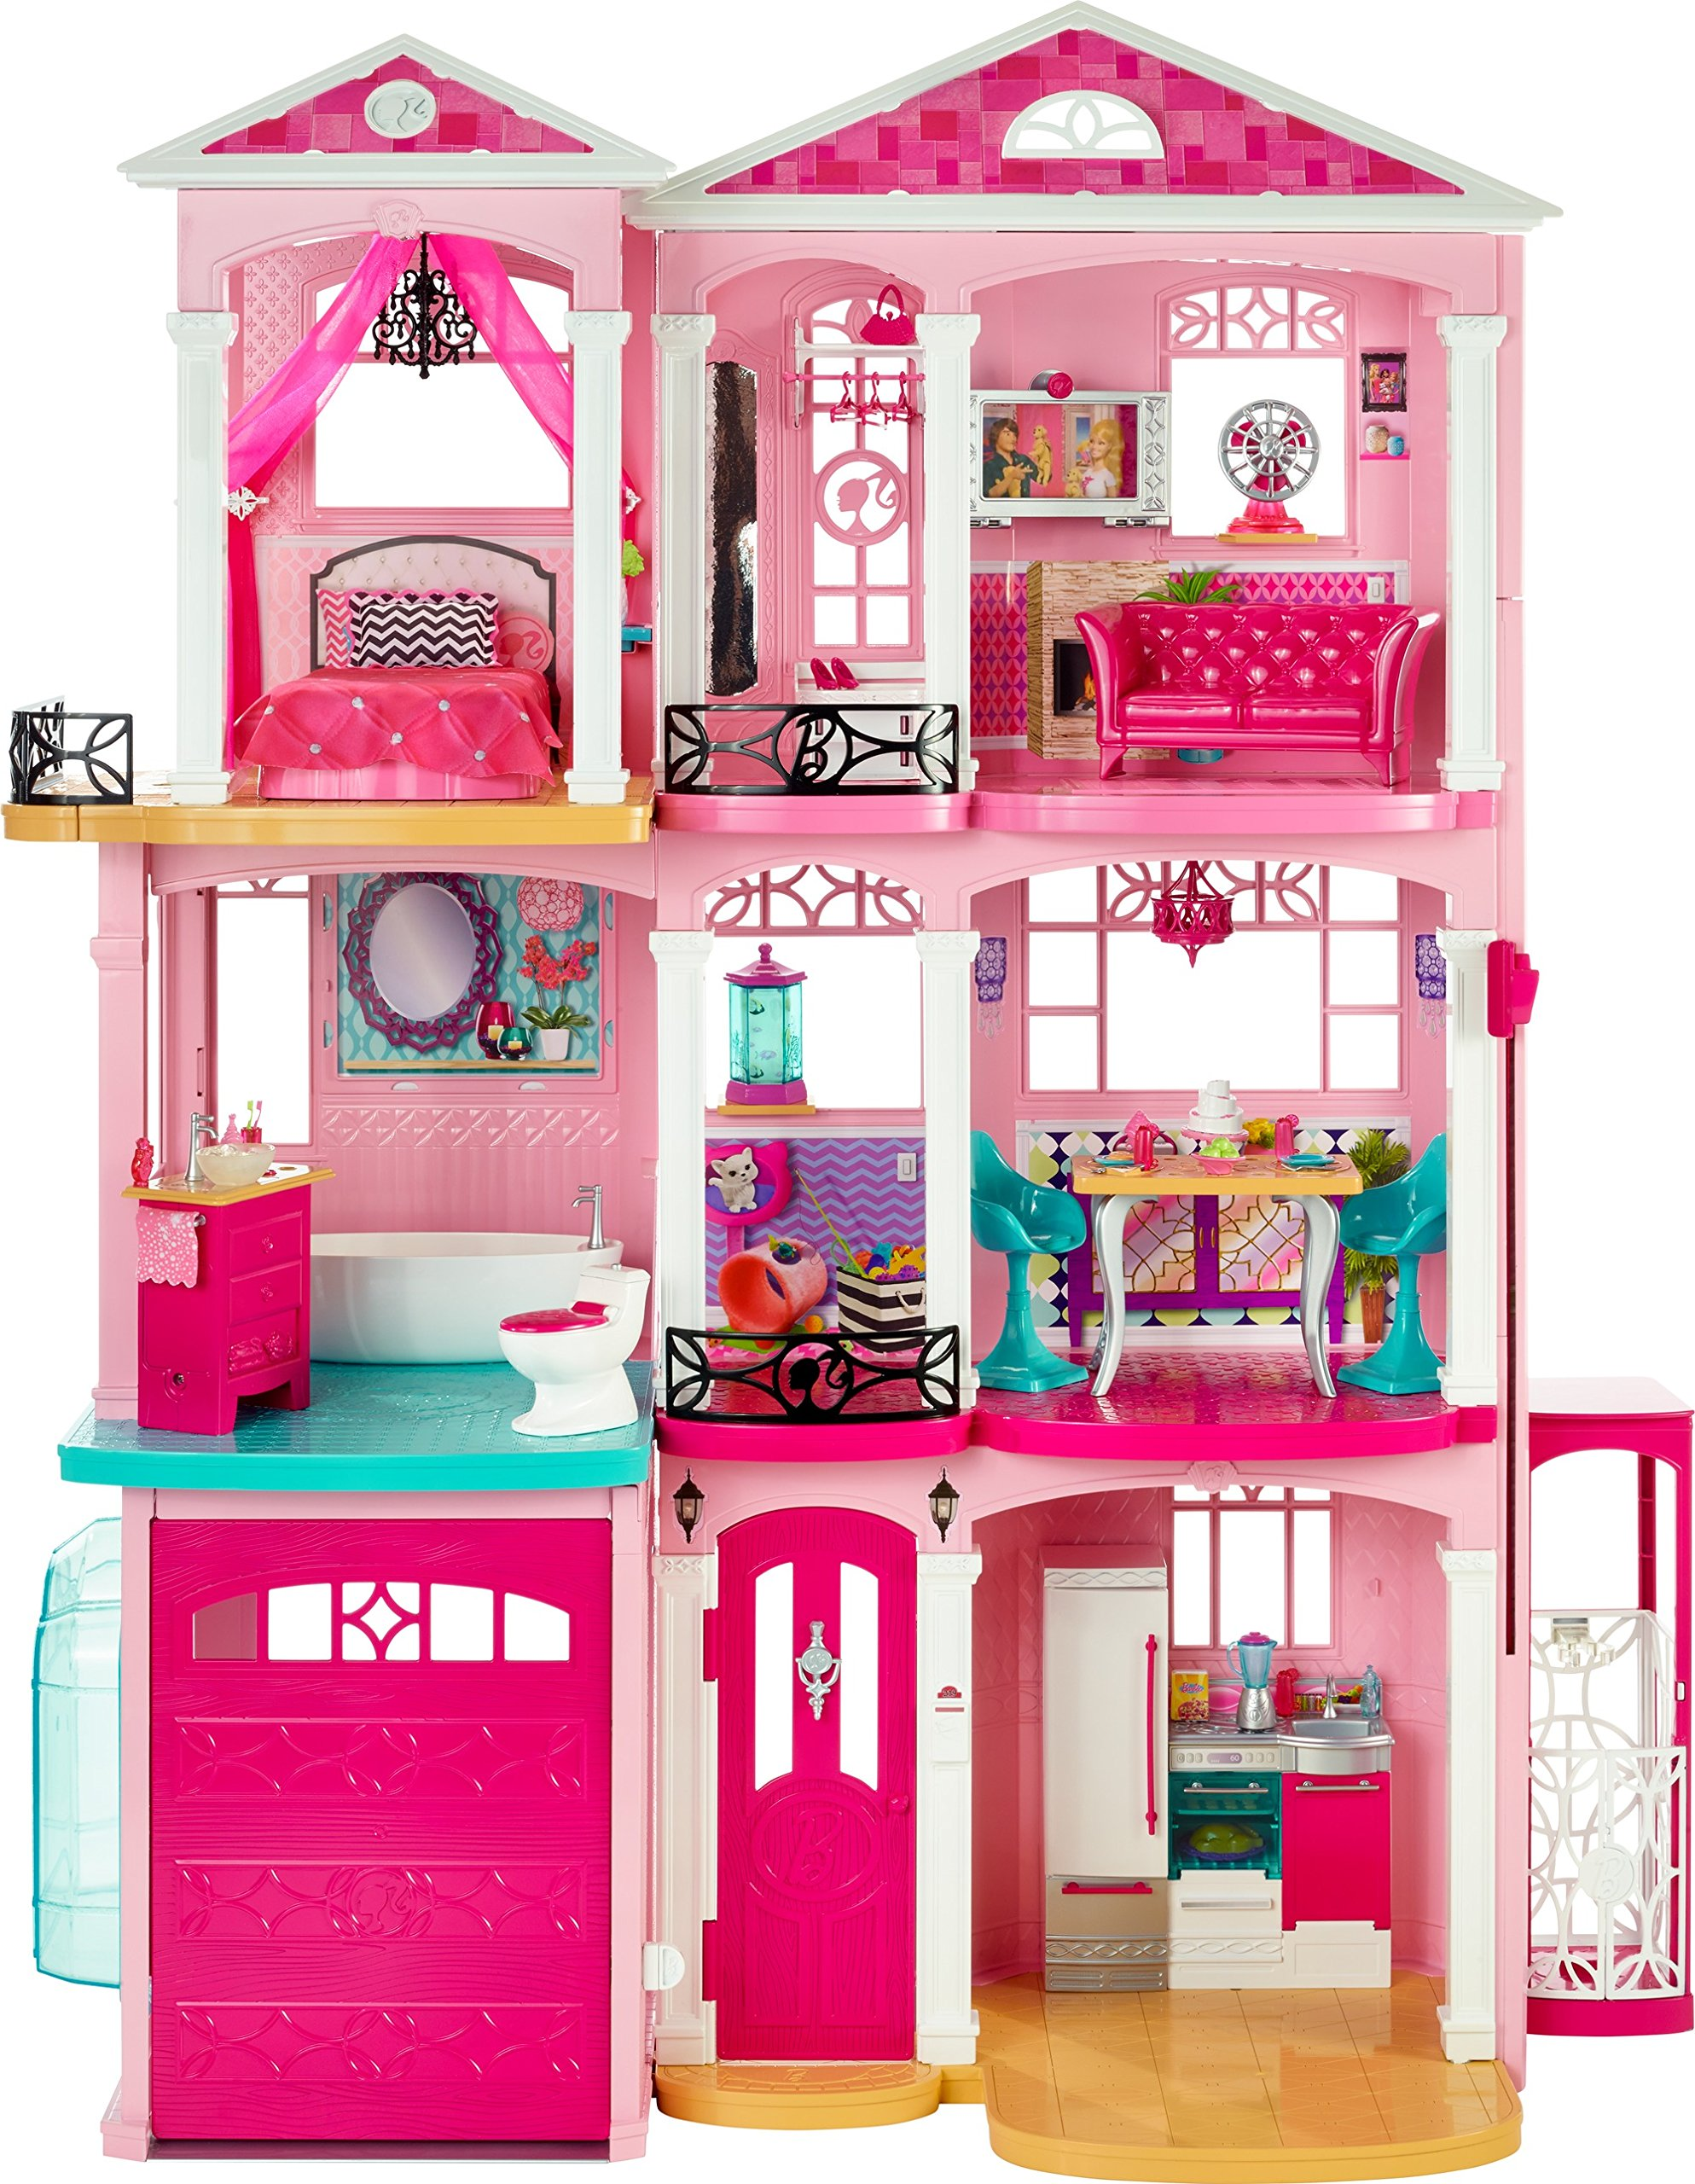 Barbie Dreamhouse by Barbie